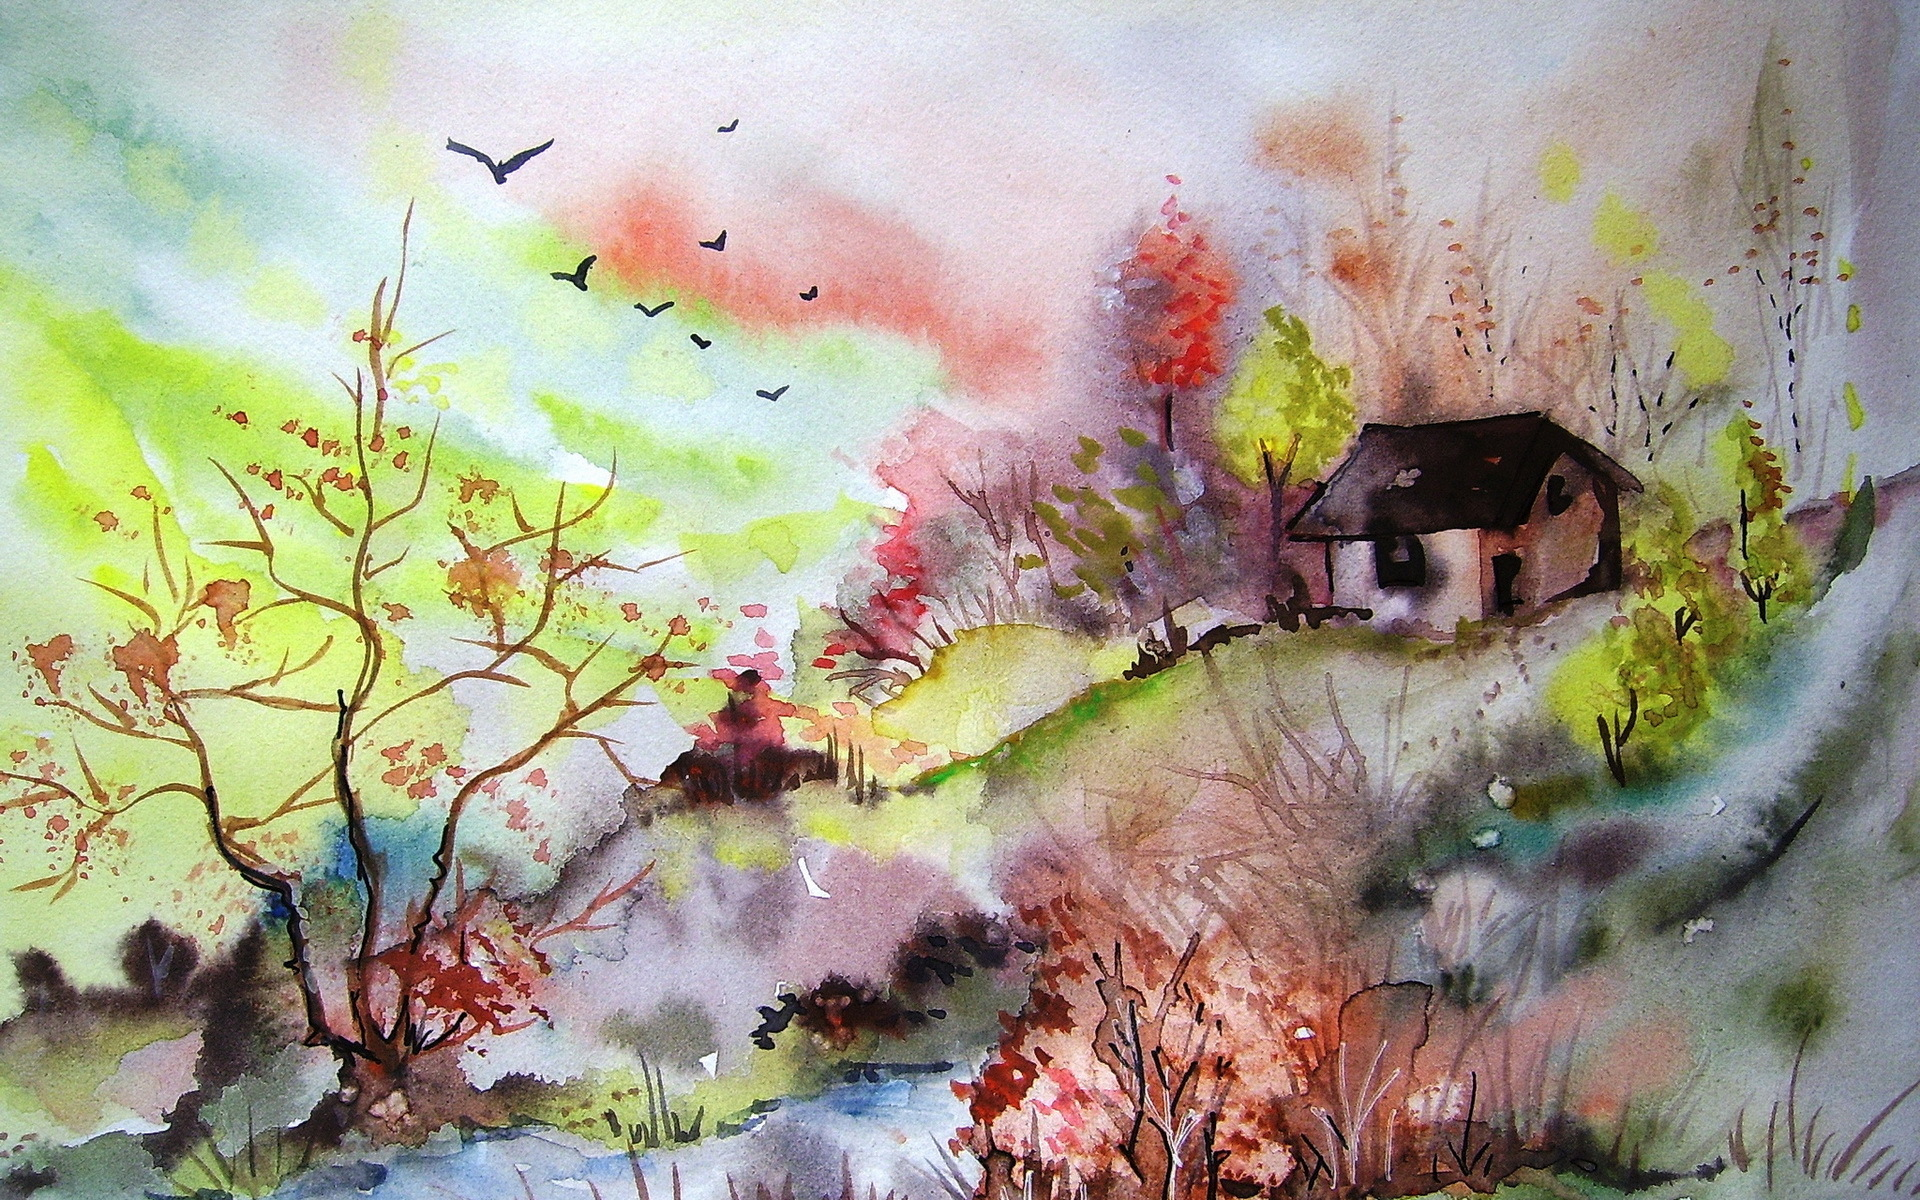 watercolor paintings images - HD1920×1200